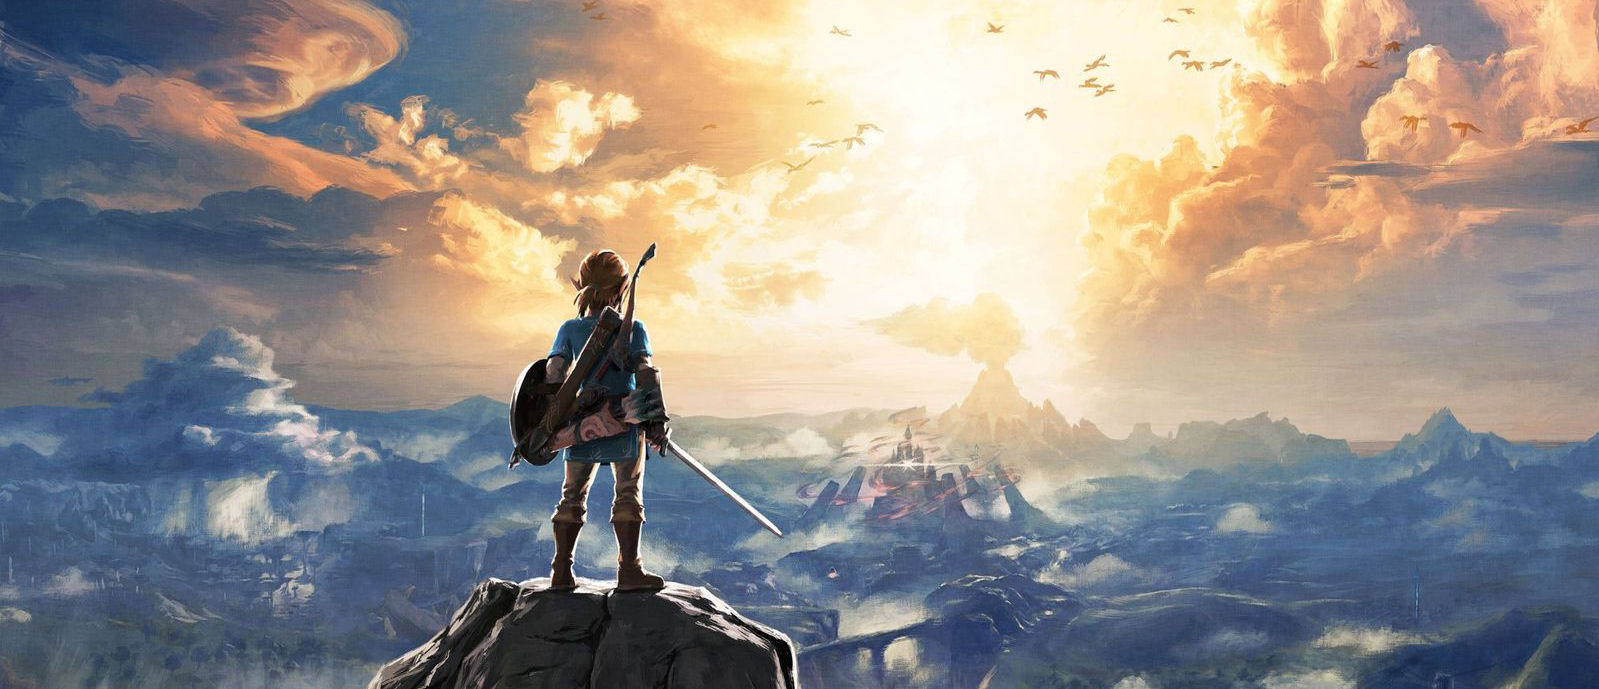 breath_of_the_wild_switch_best_price_2017